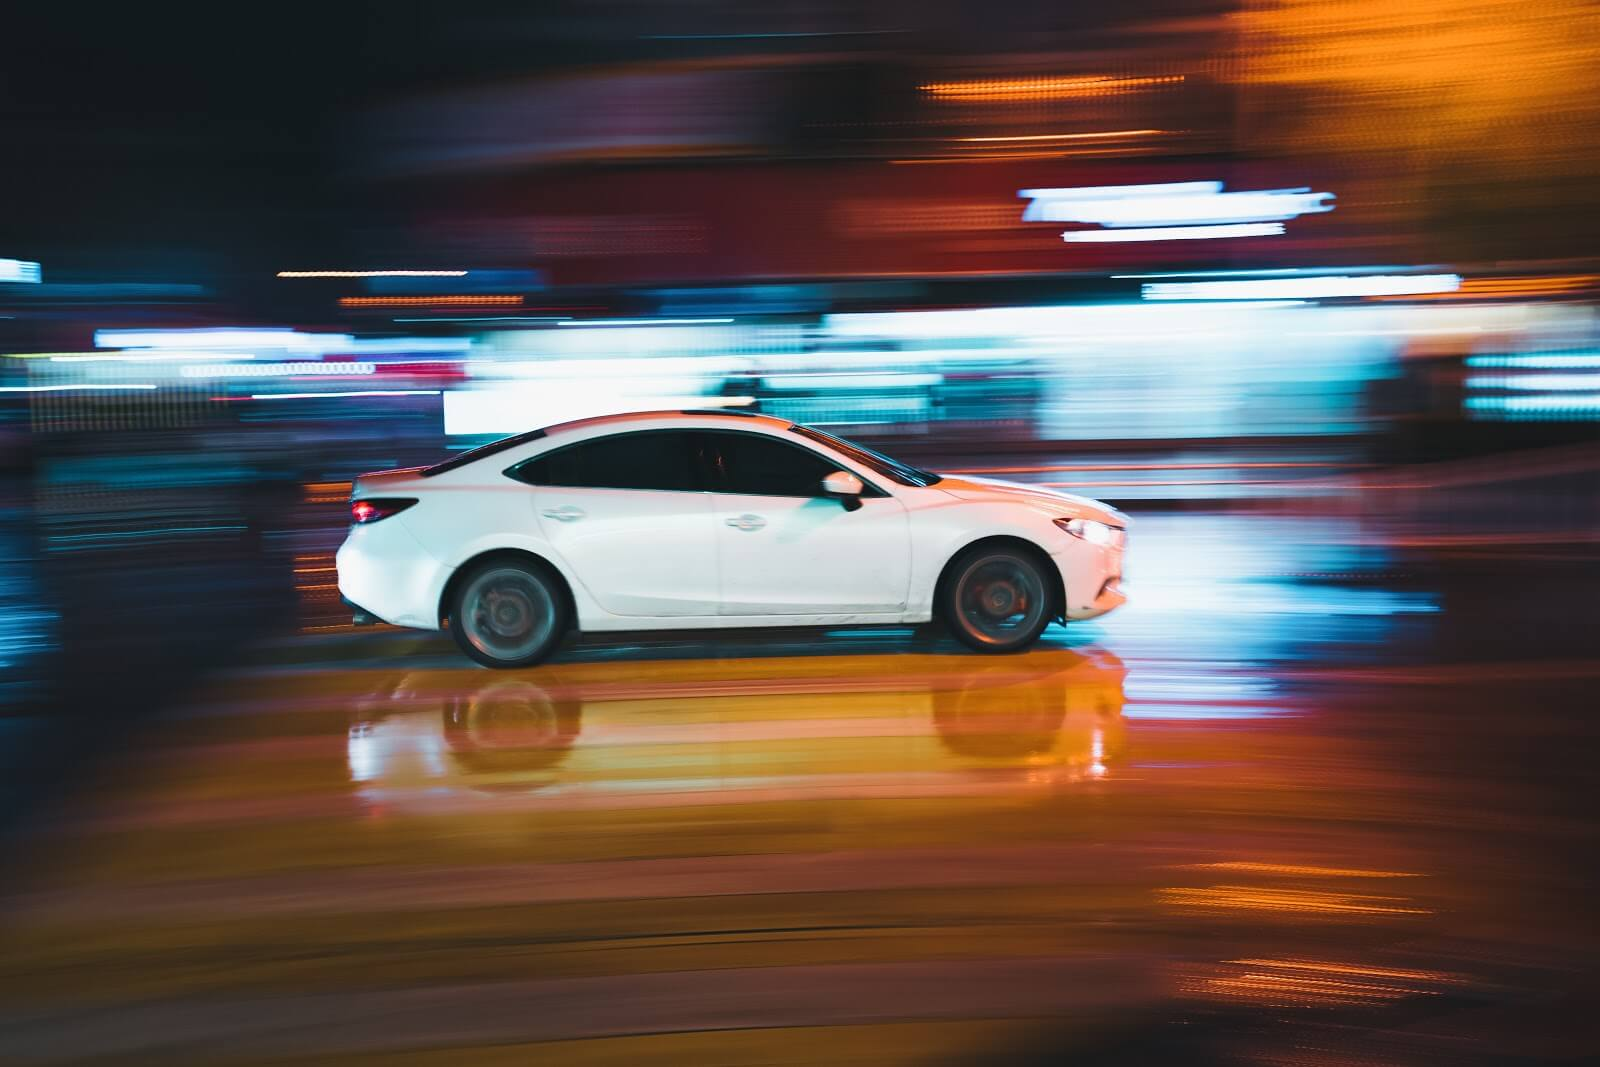 Uber XChange: a car surrounded by bright lights